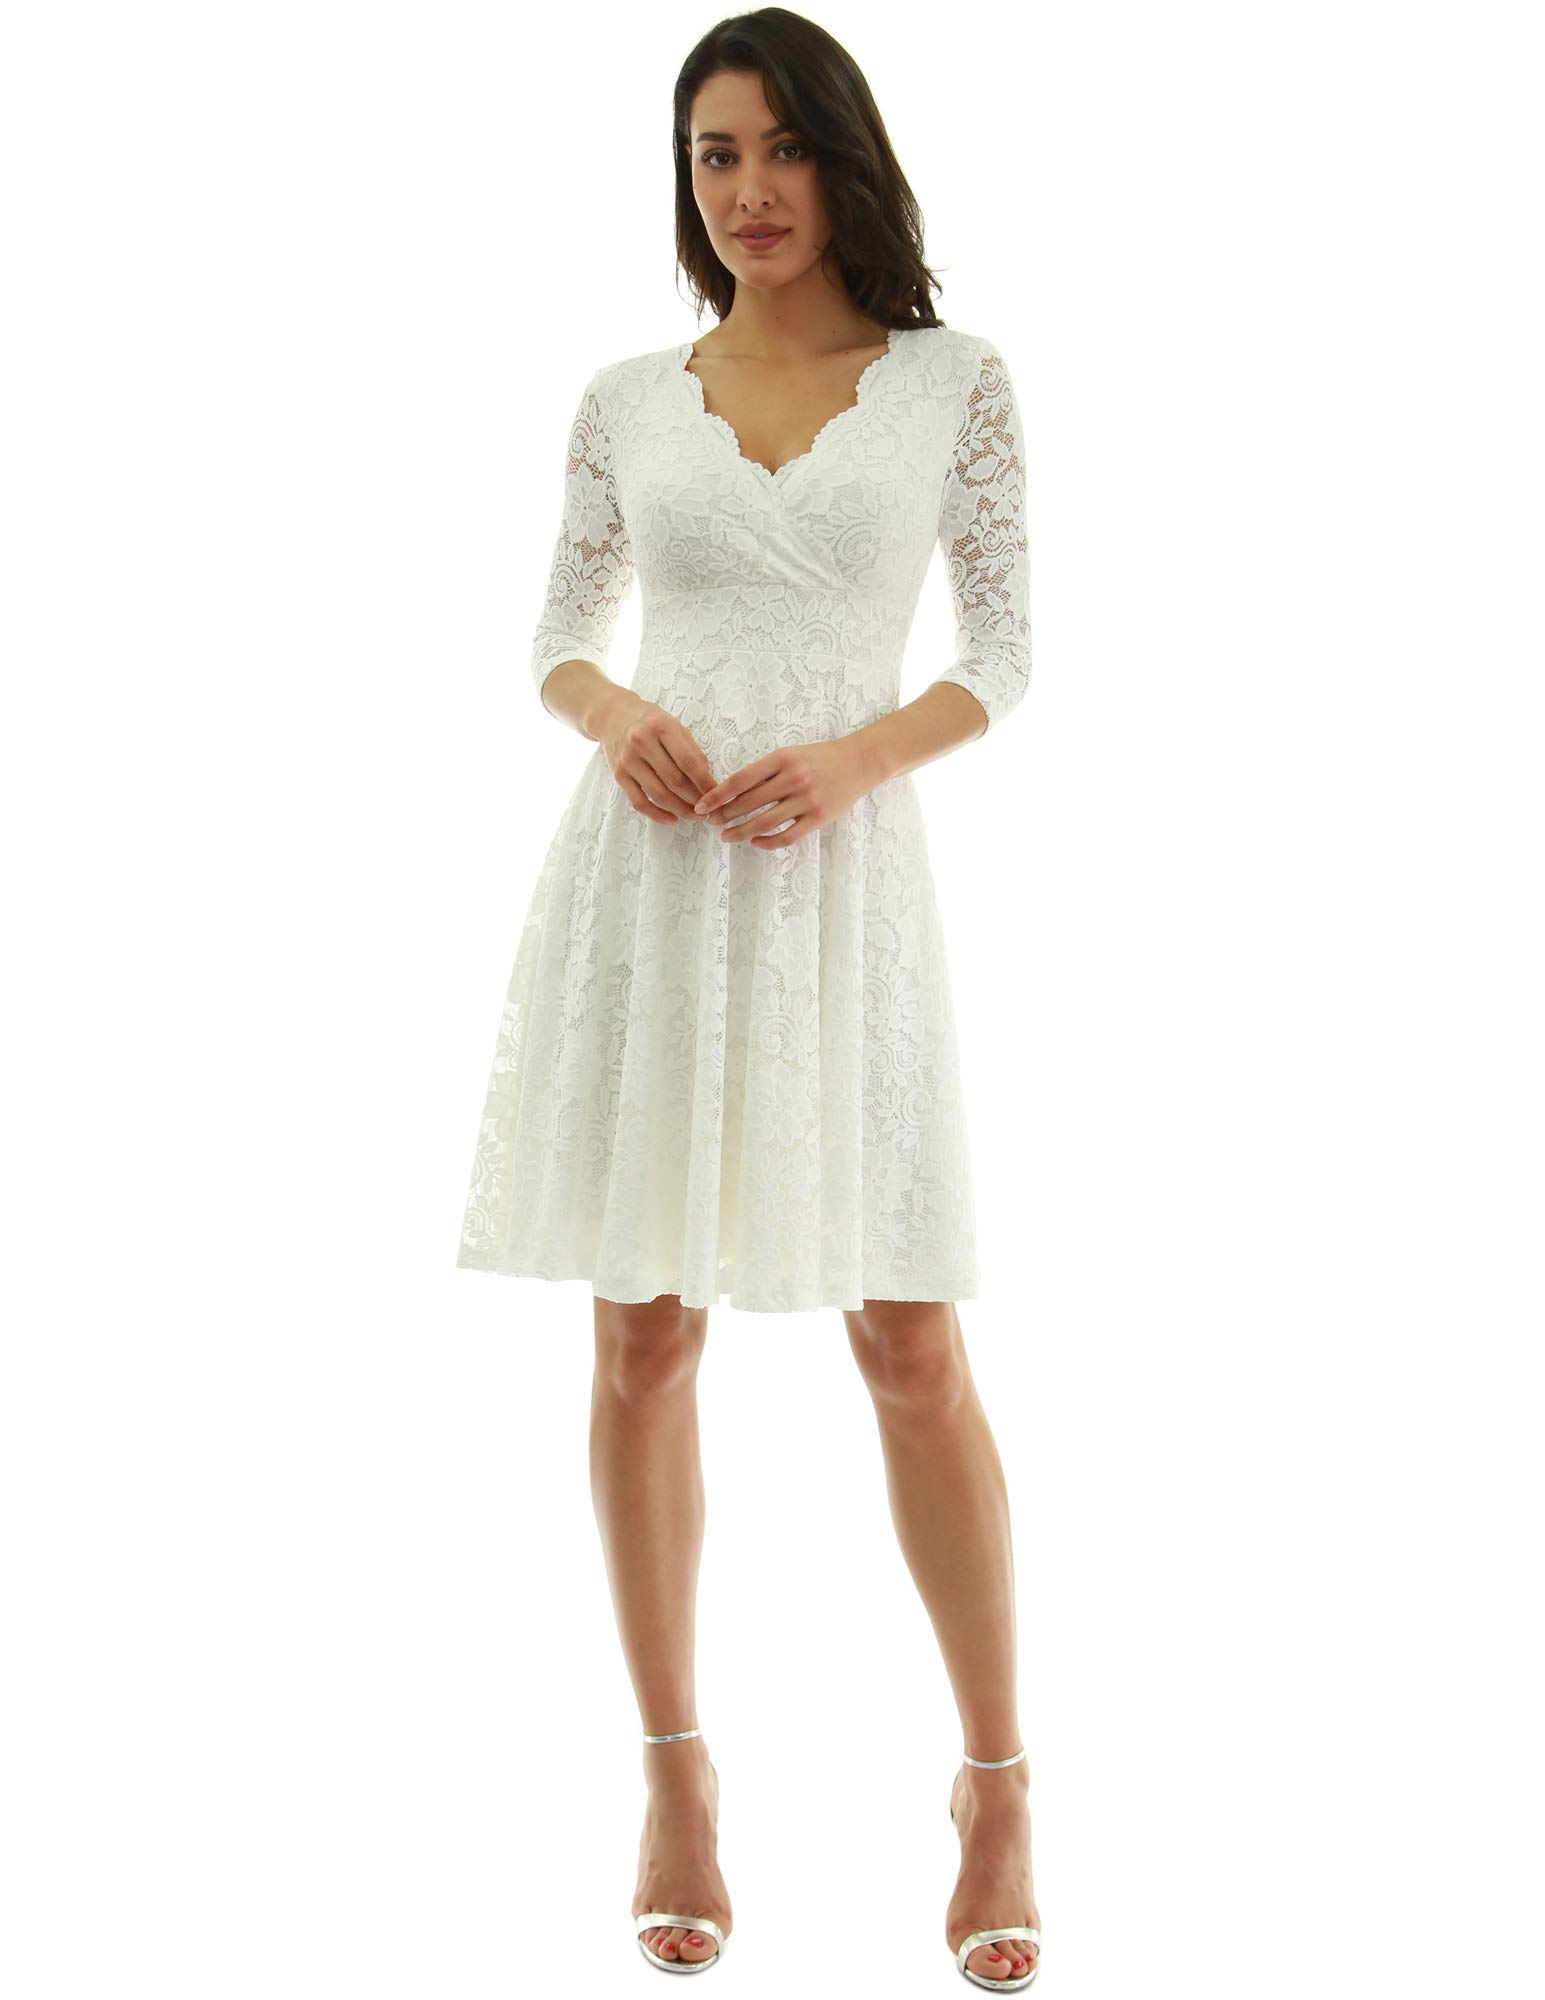 White Dress - Women Floral Lace Overlay Fit And Flare Dress